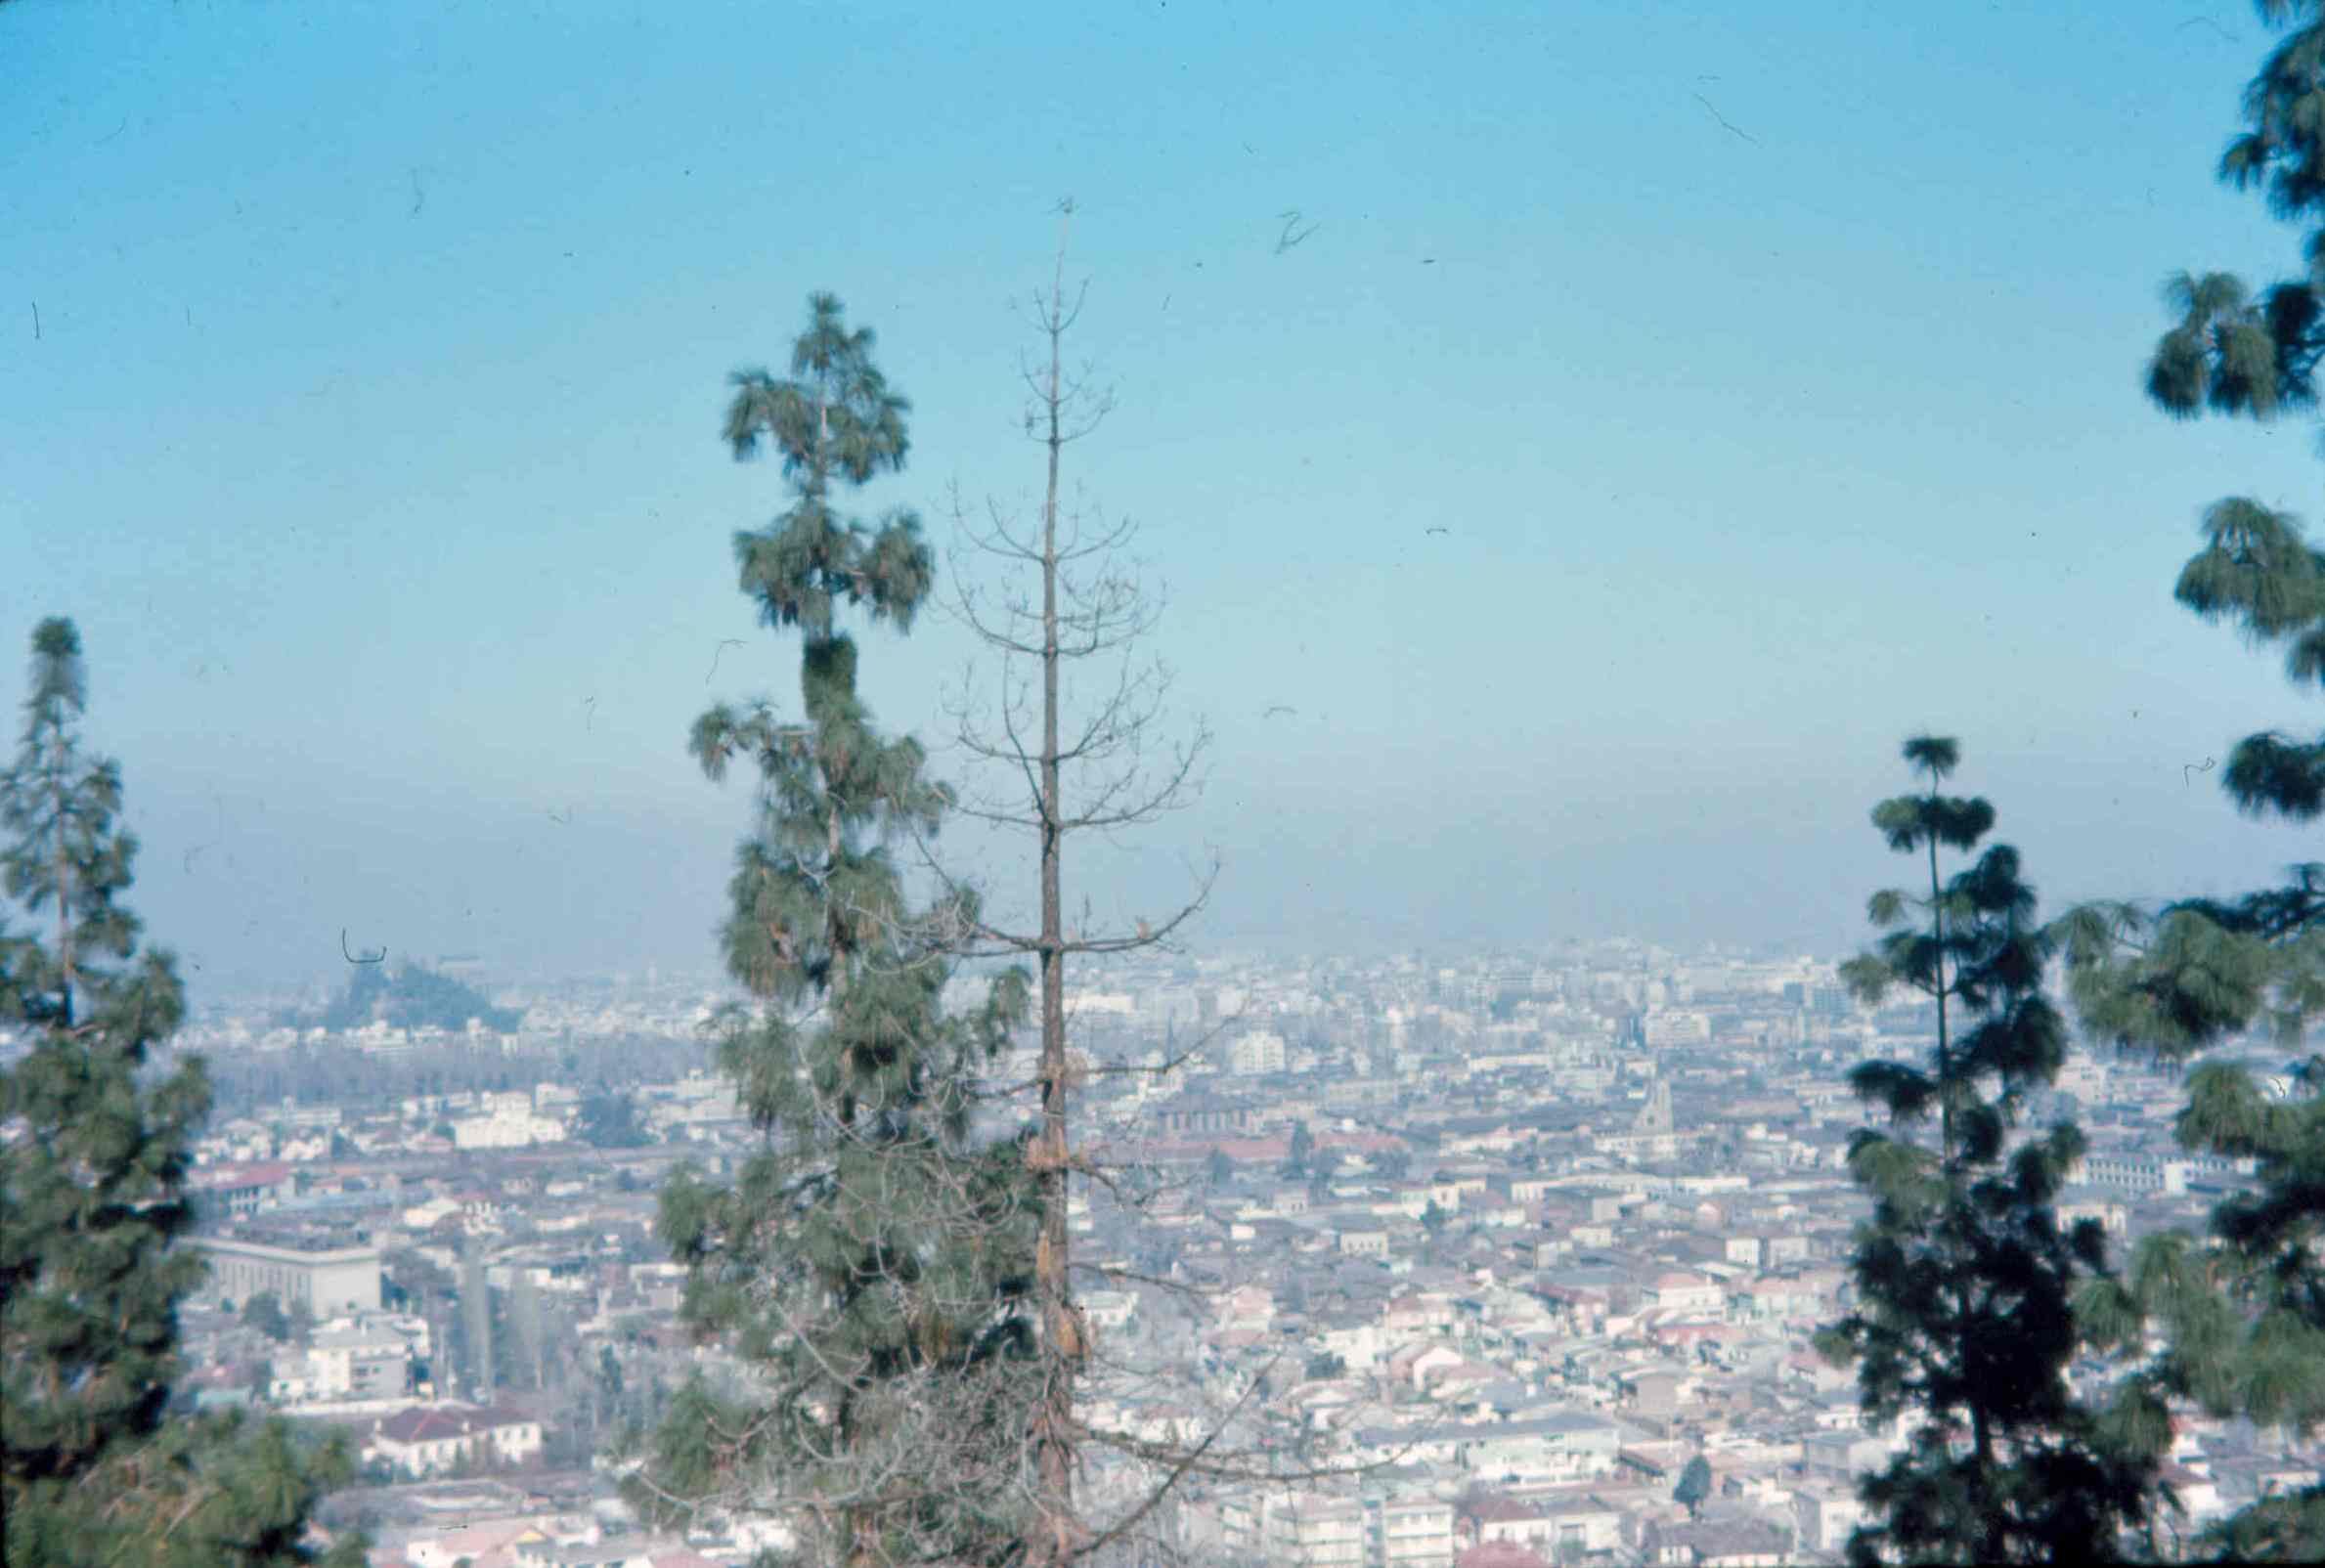 Enterreno - Fotos históricas de chile - fotos antiguas de Chile - Panorama de Santiago en 1969